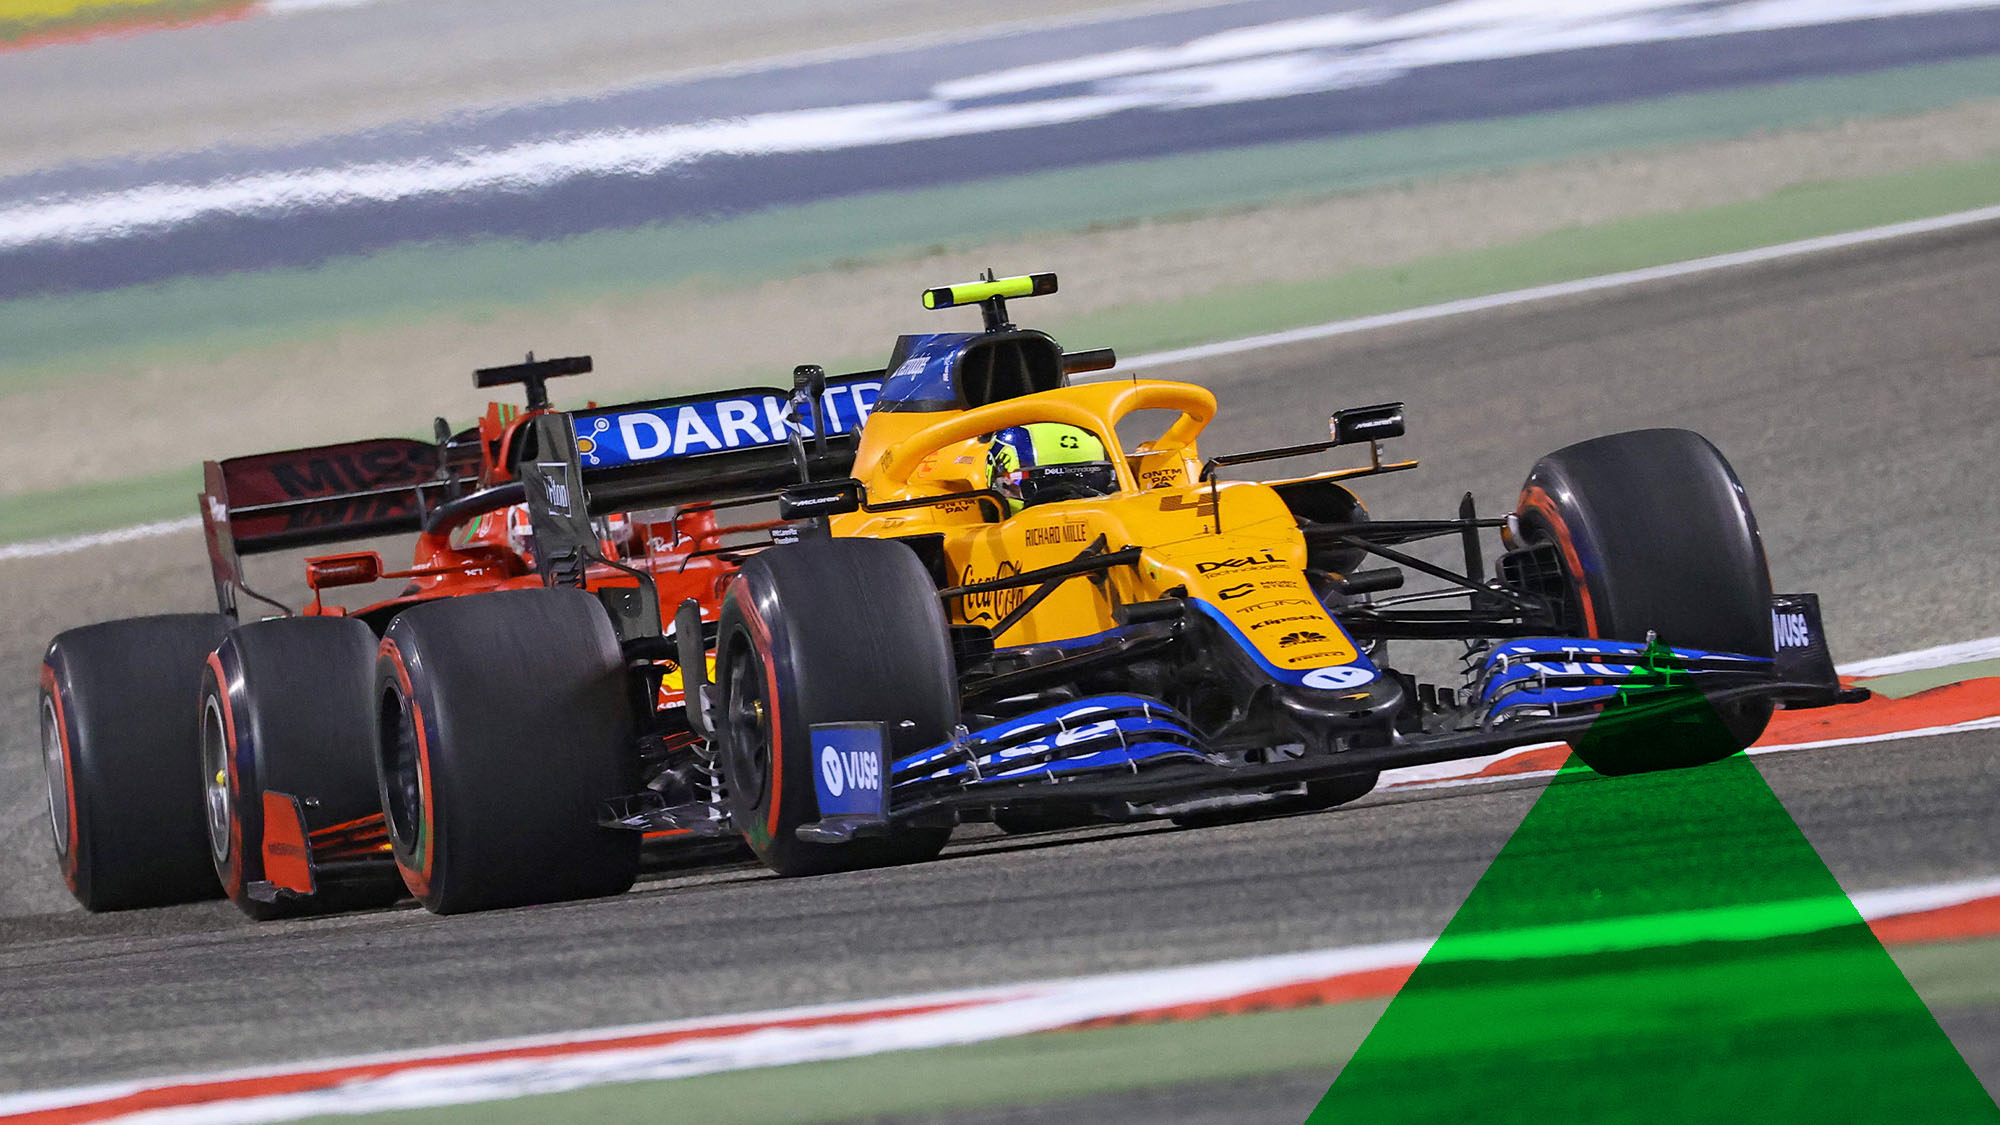 McLaren's British driver Lando Norris vies for position with Ferrari's Monegasque driver Charles Leclerc during the Bahrain Formula One Grand Prix at the Bahrain International Circuit in the city of Sakhir on March 28, 2021. (Photo by Giuseppe CACACE / AFP) (Photo by GIUSEPPE CACACE/AFP via Getty Images)